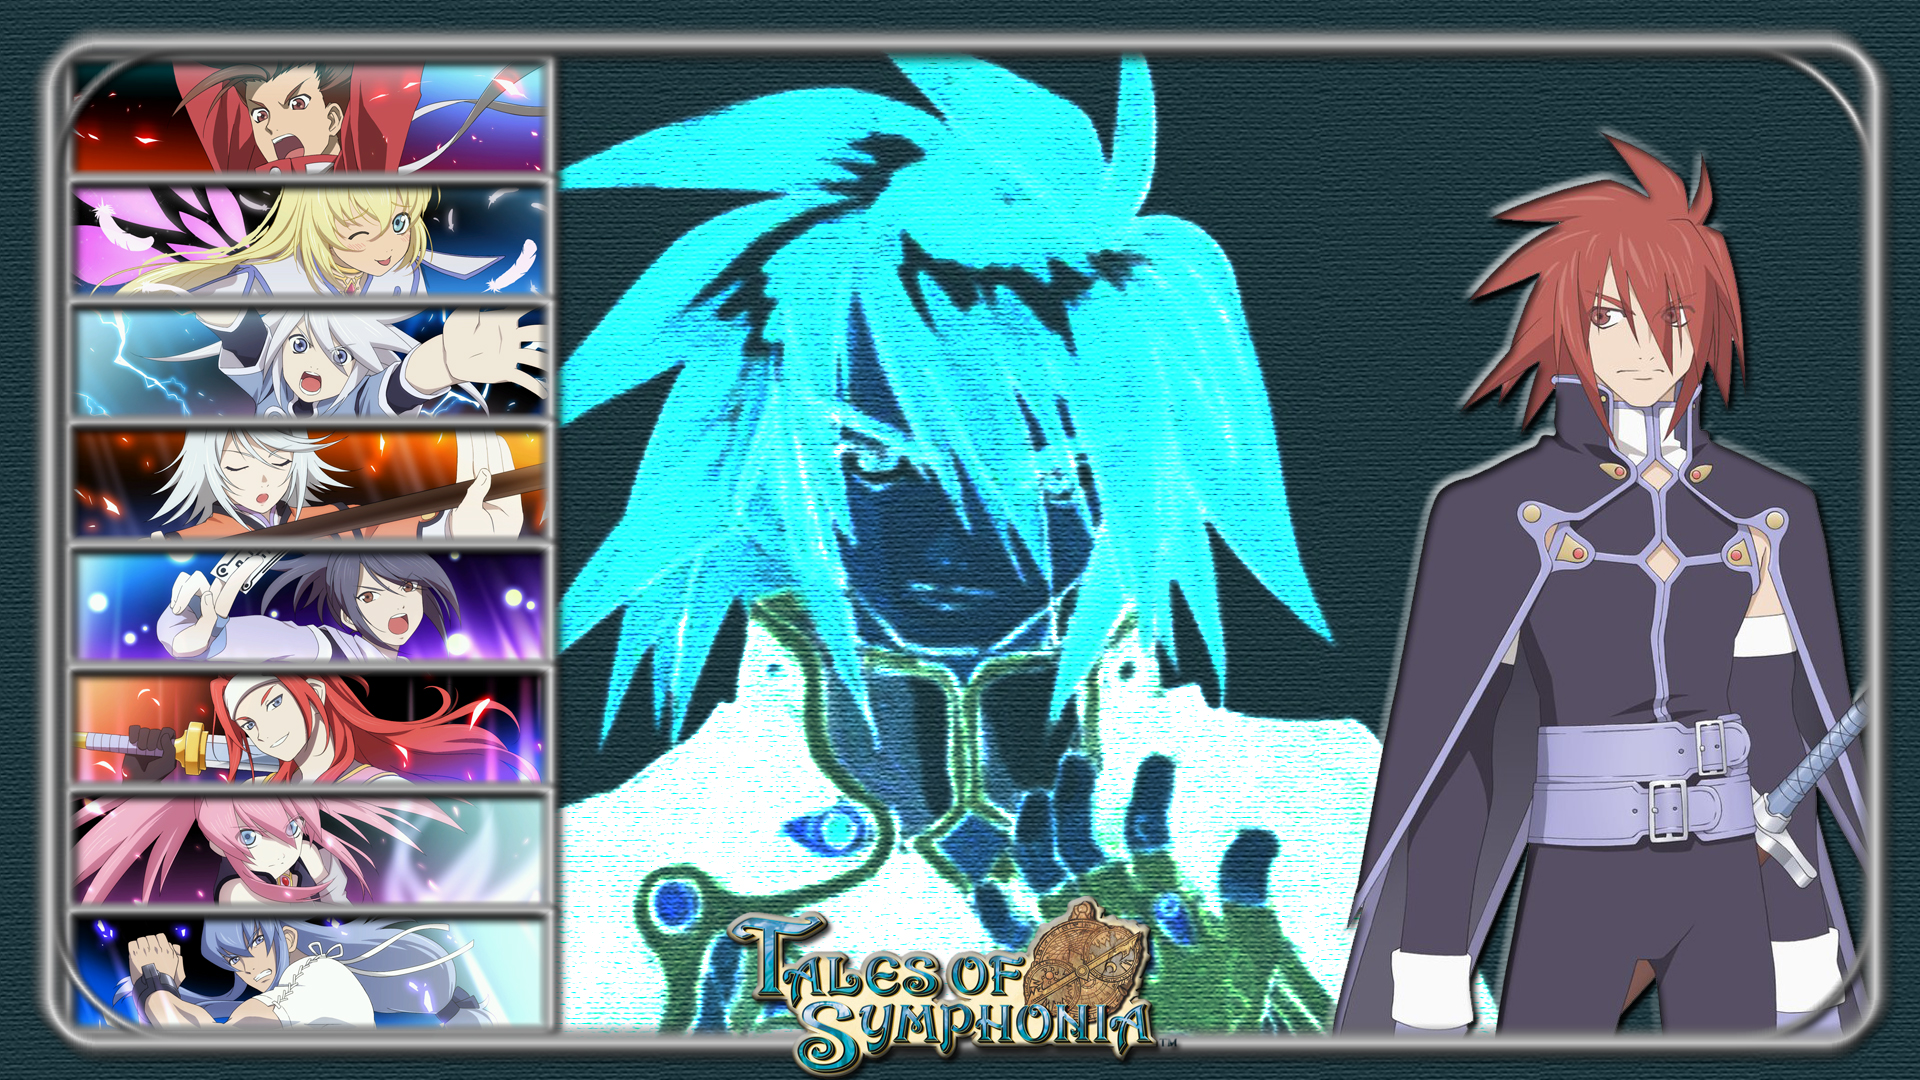 Ninefold Tales Of Symphonia Kratos By Mrjechgo On Deviantart